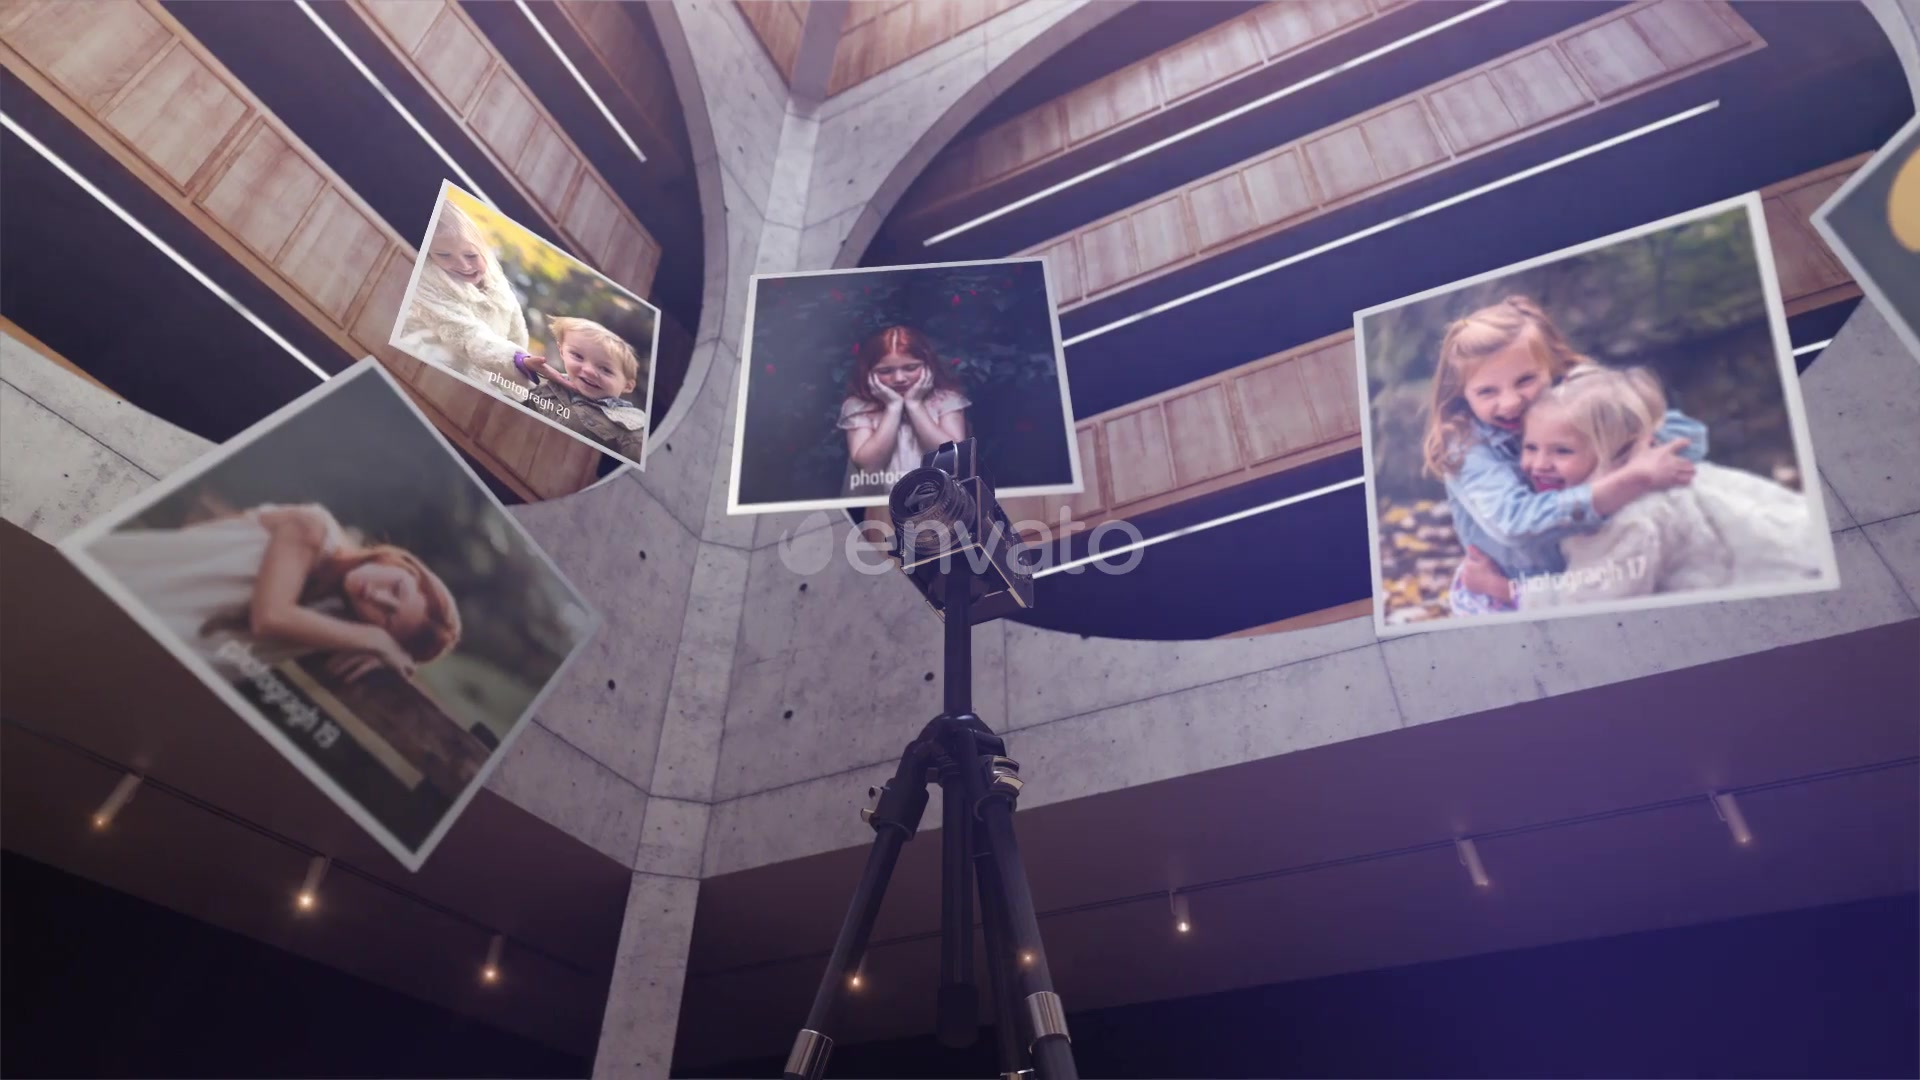 Photo Slideshow 3D - Download Videohive 21681139